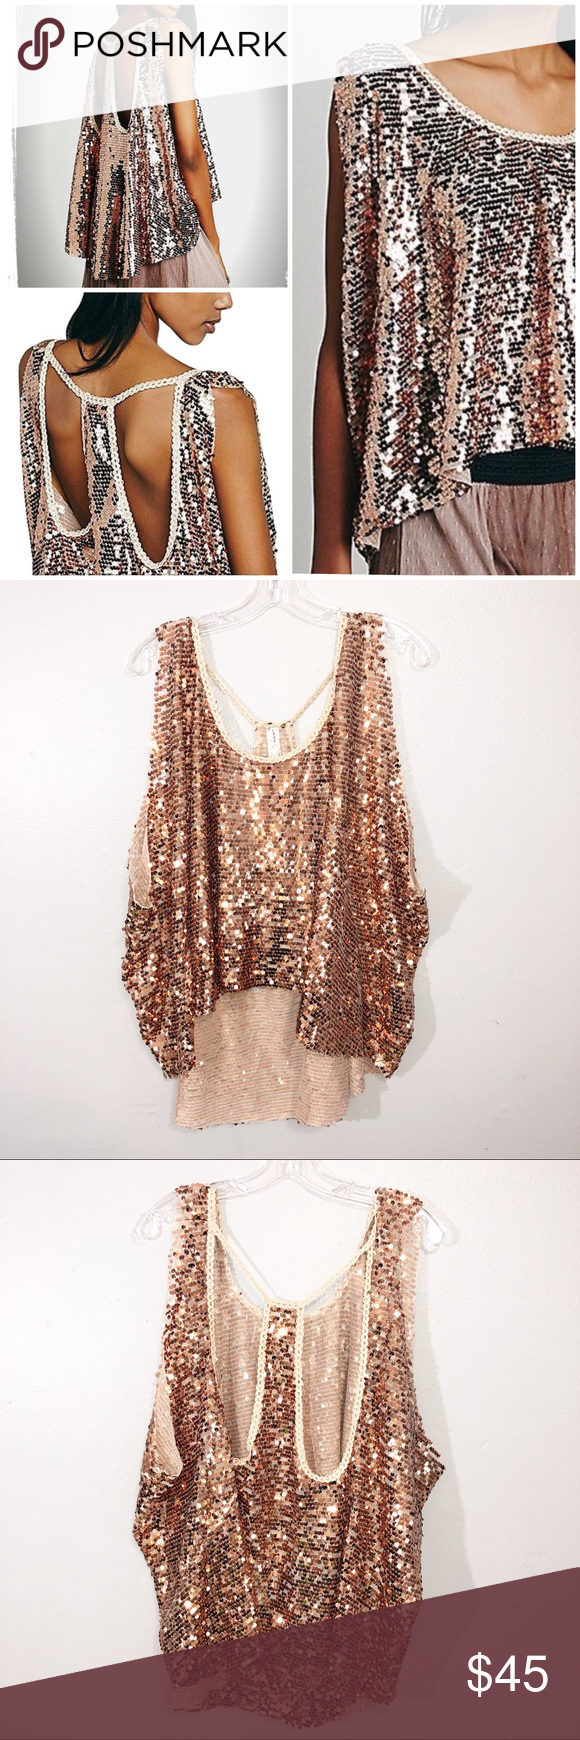 1251e7e8 Free People | Sequin Tank Free People | Sequin Tank New without tags Free  People oversized